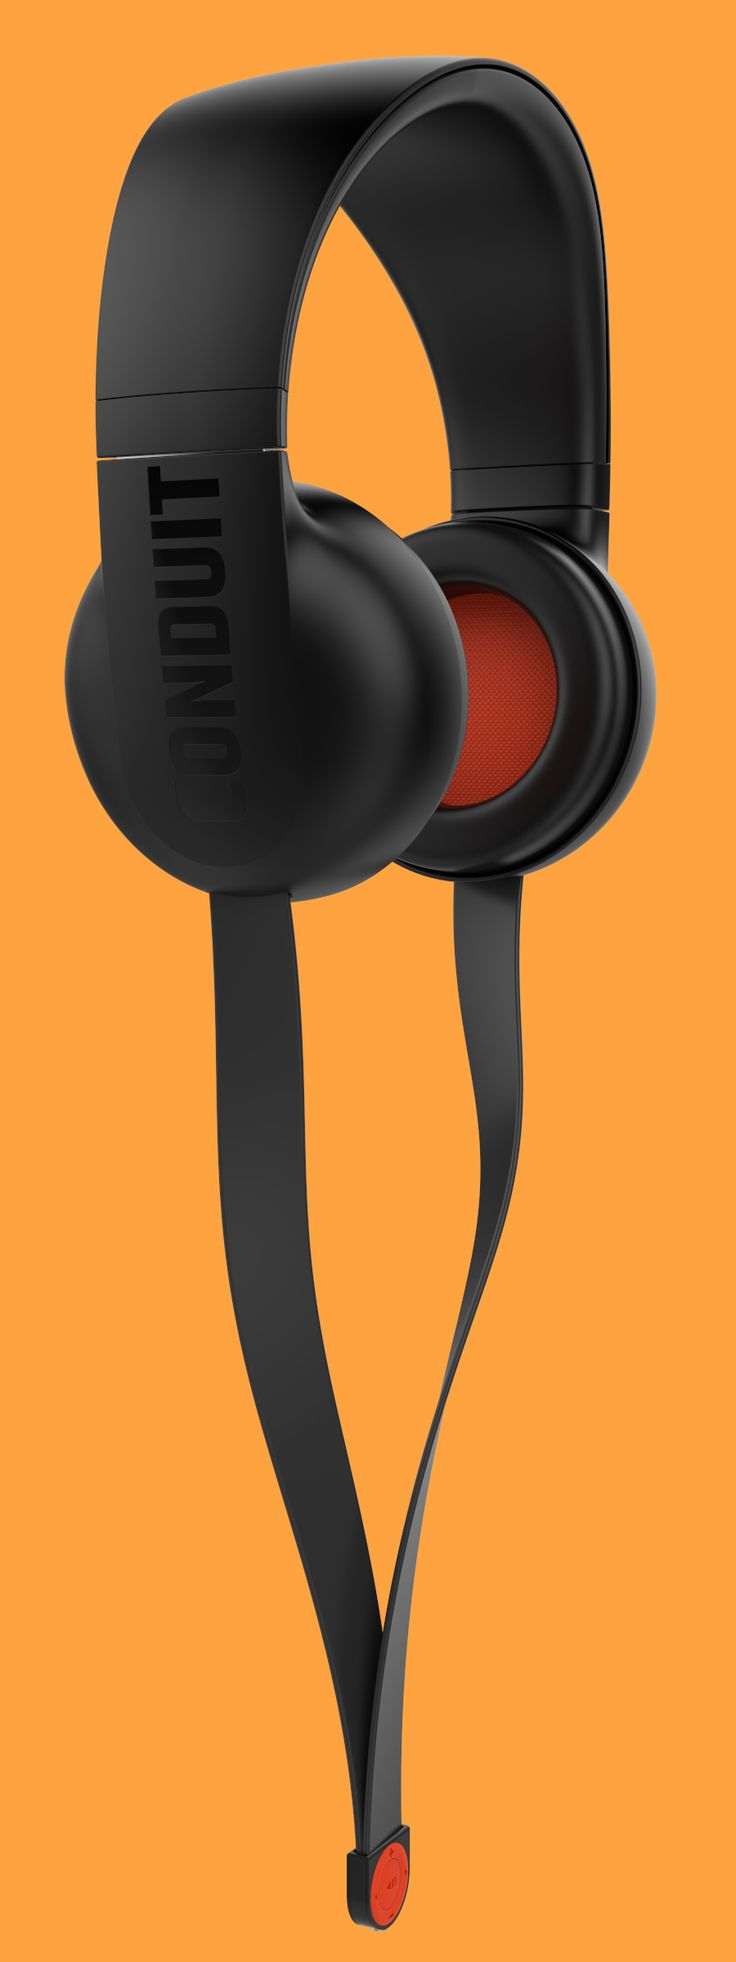 Headphones from Conduit Audio, by Robin Stethem of STETHEM.COM